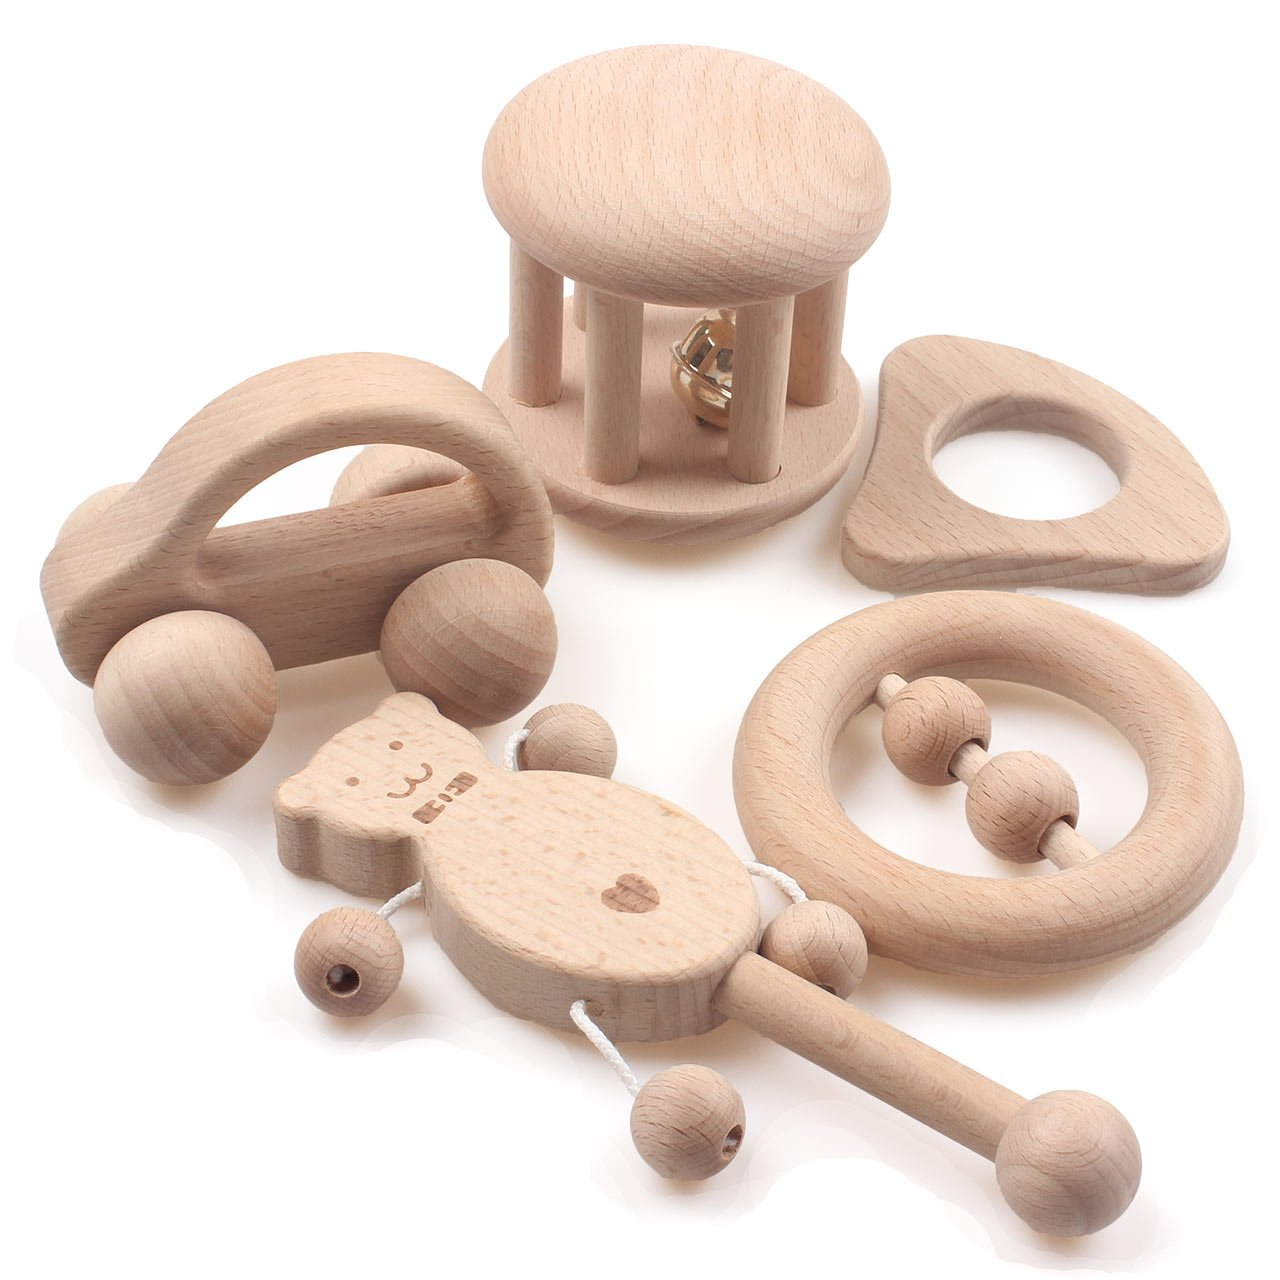 Baby Teether Wooden Teething Set of 5 Natural Beech Wood for Girl and Boy Chew Toy Infant Training Organic Rattle with Tinkle Bell Montessori Toys